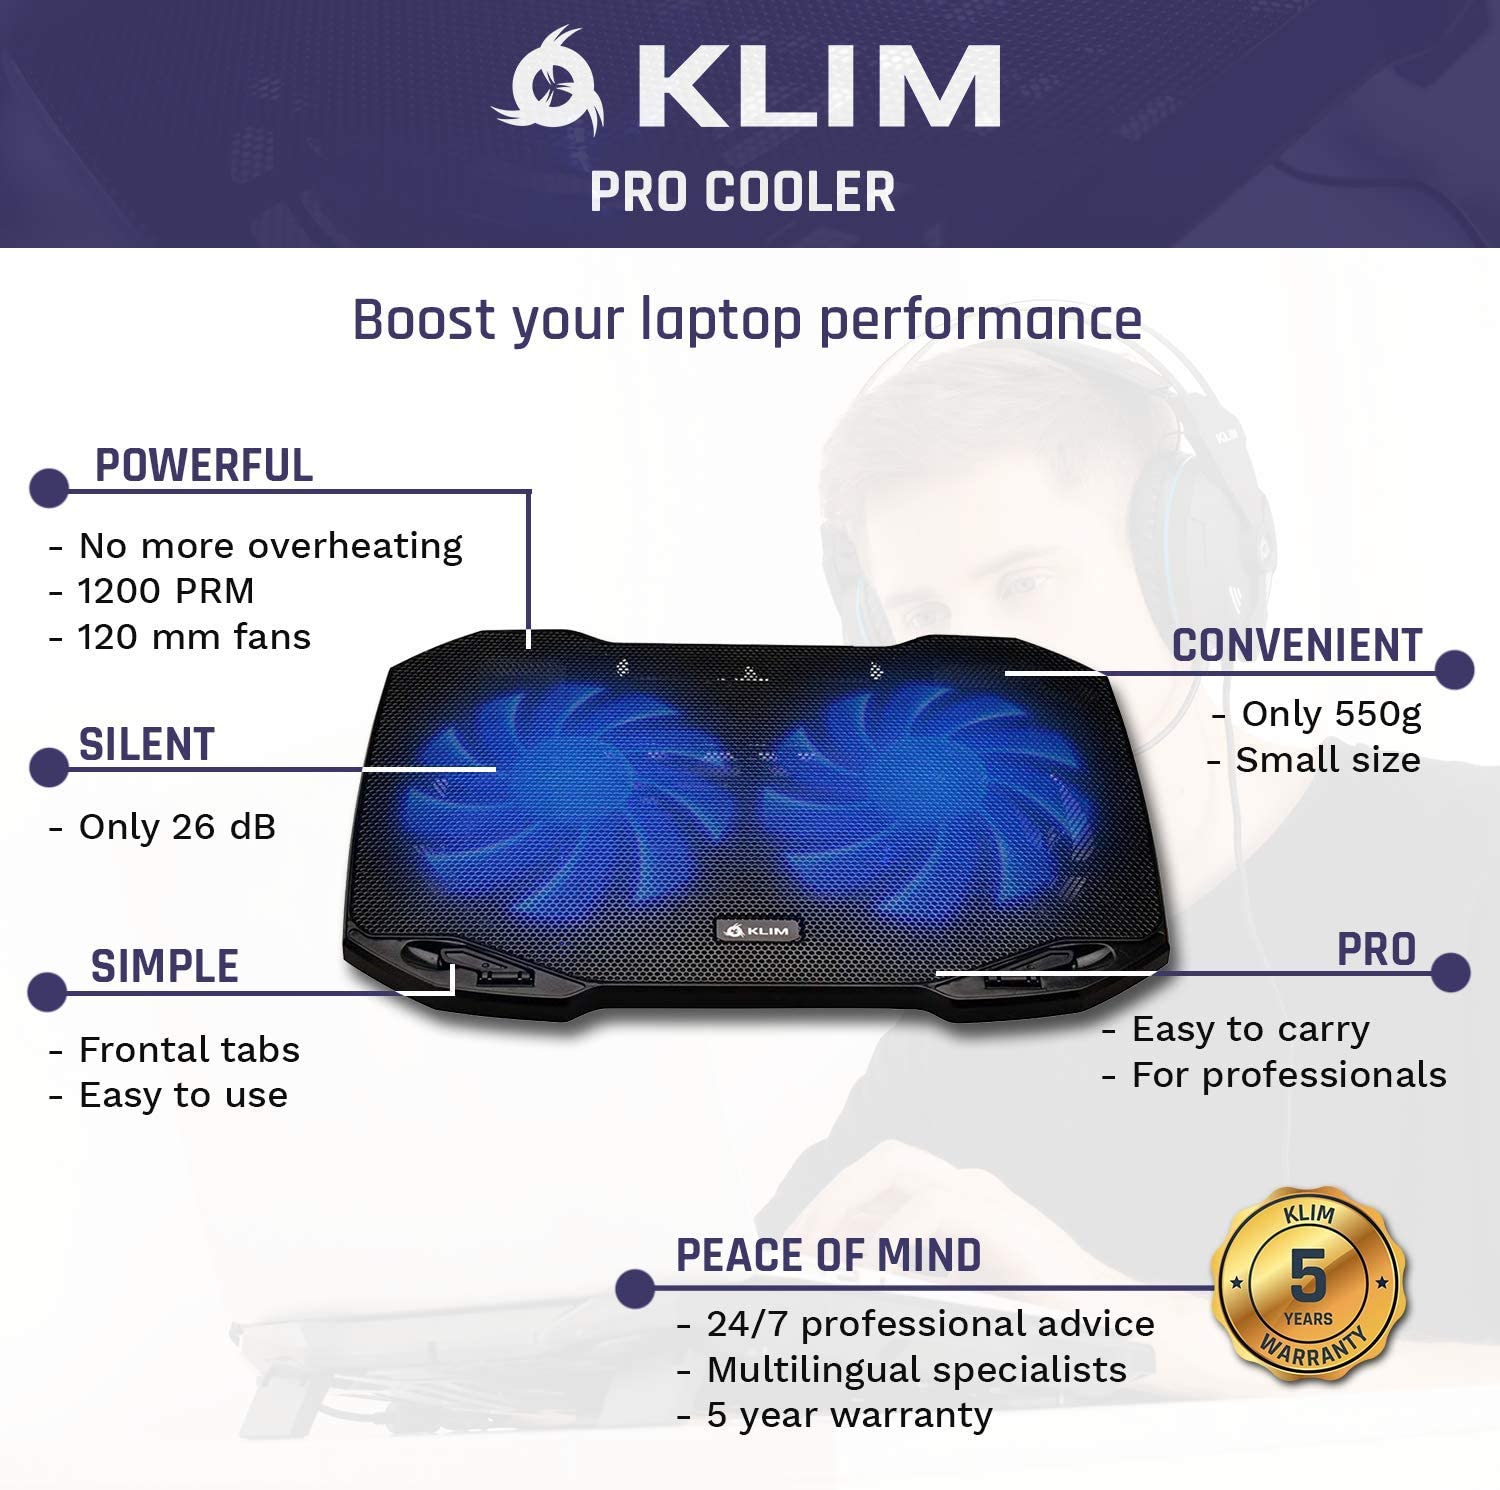 """Light 10/"""" to 15,6/"""" Compact White Black New 2020 Version The Laptop Cooling Pad for Professionals Durable Extra USB Port KLIM Pro Easy to Carry Laptop Cooler with Fans"""